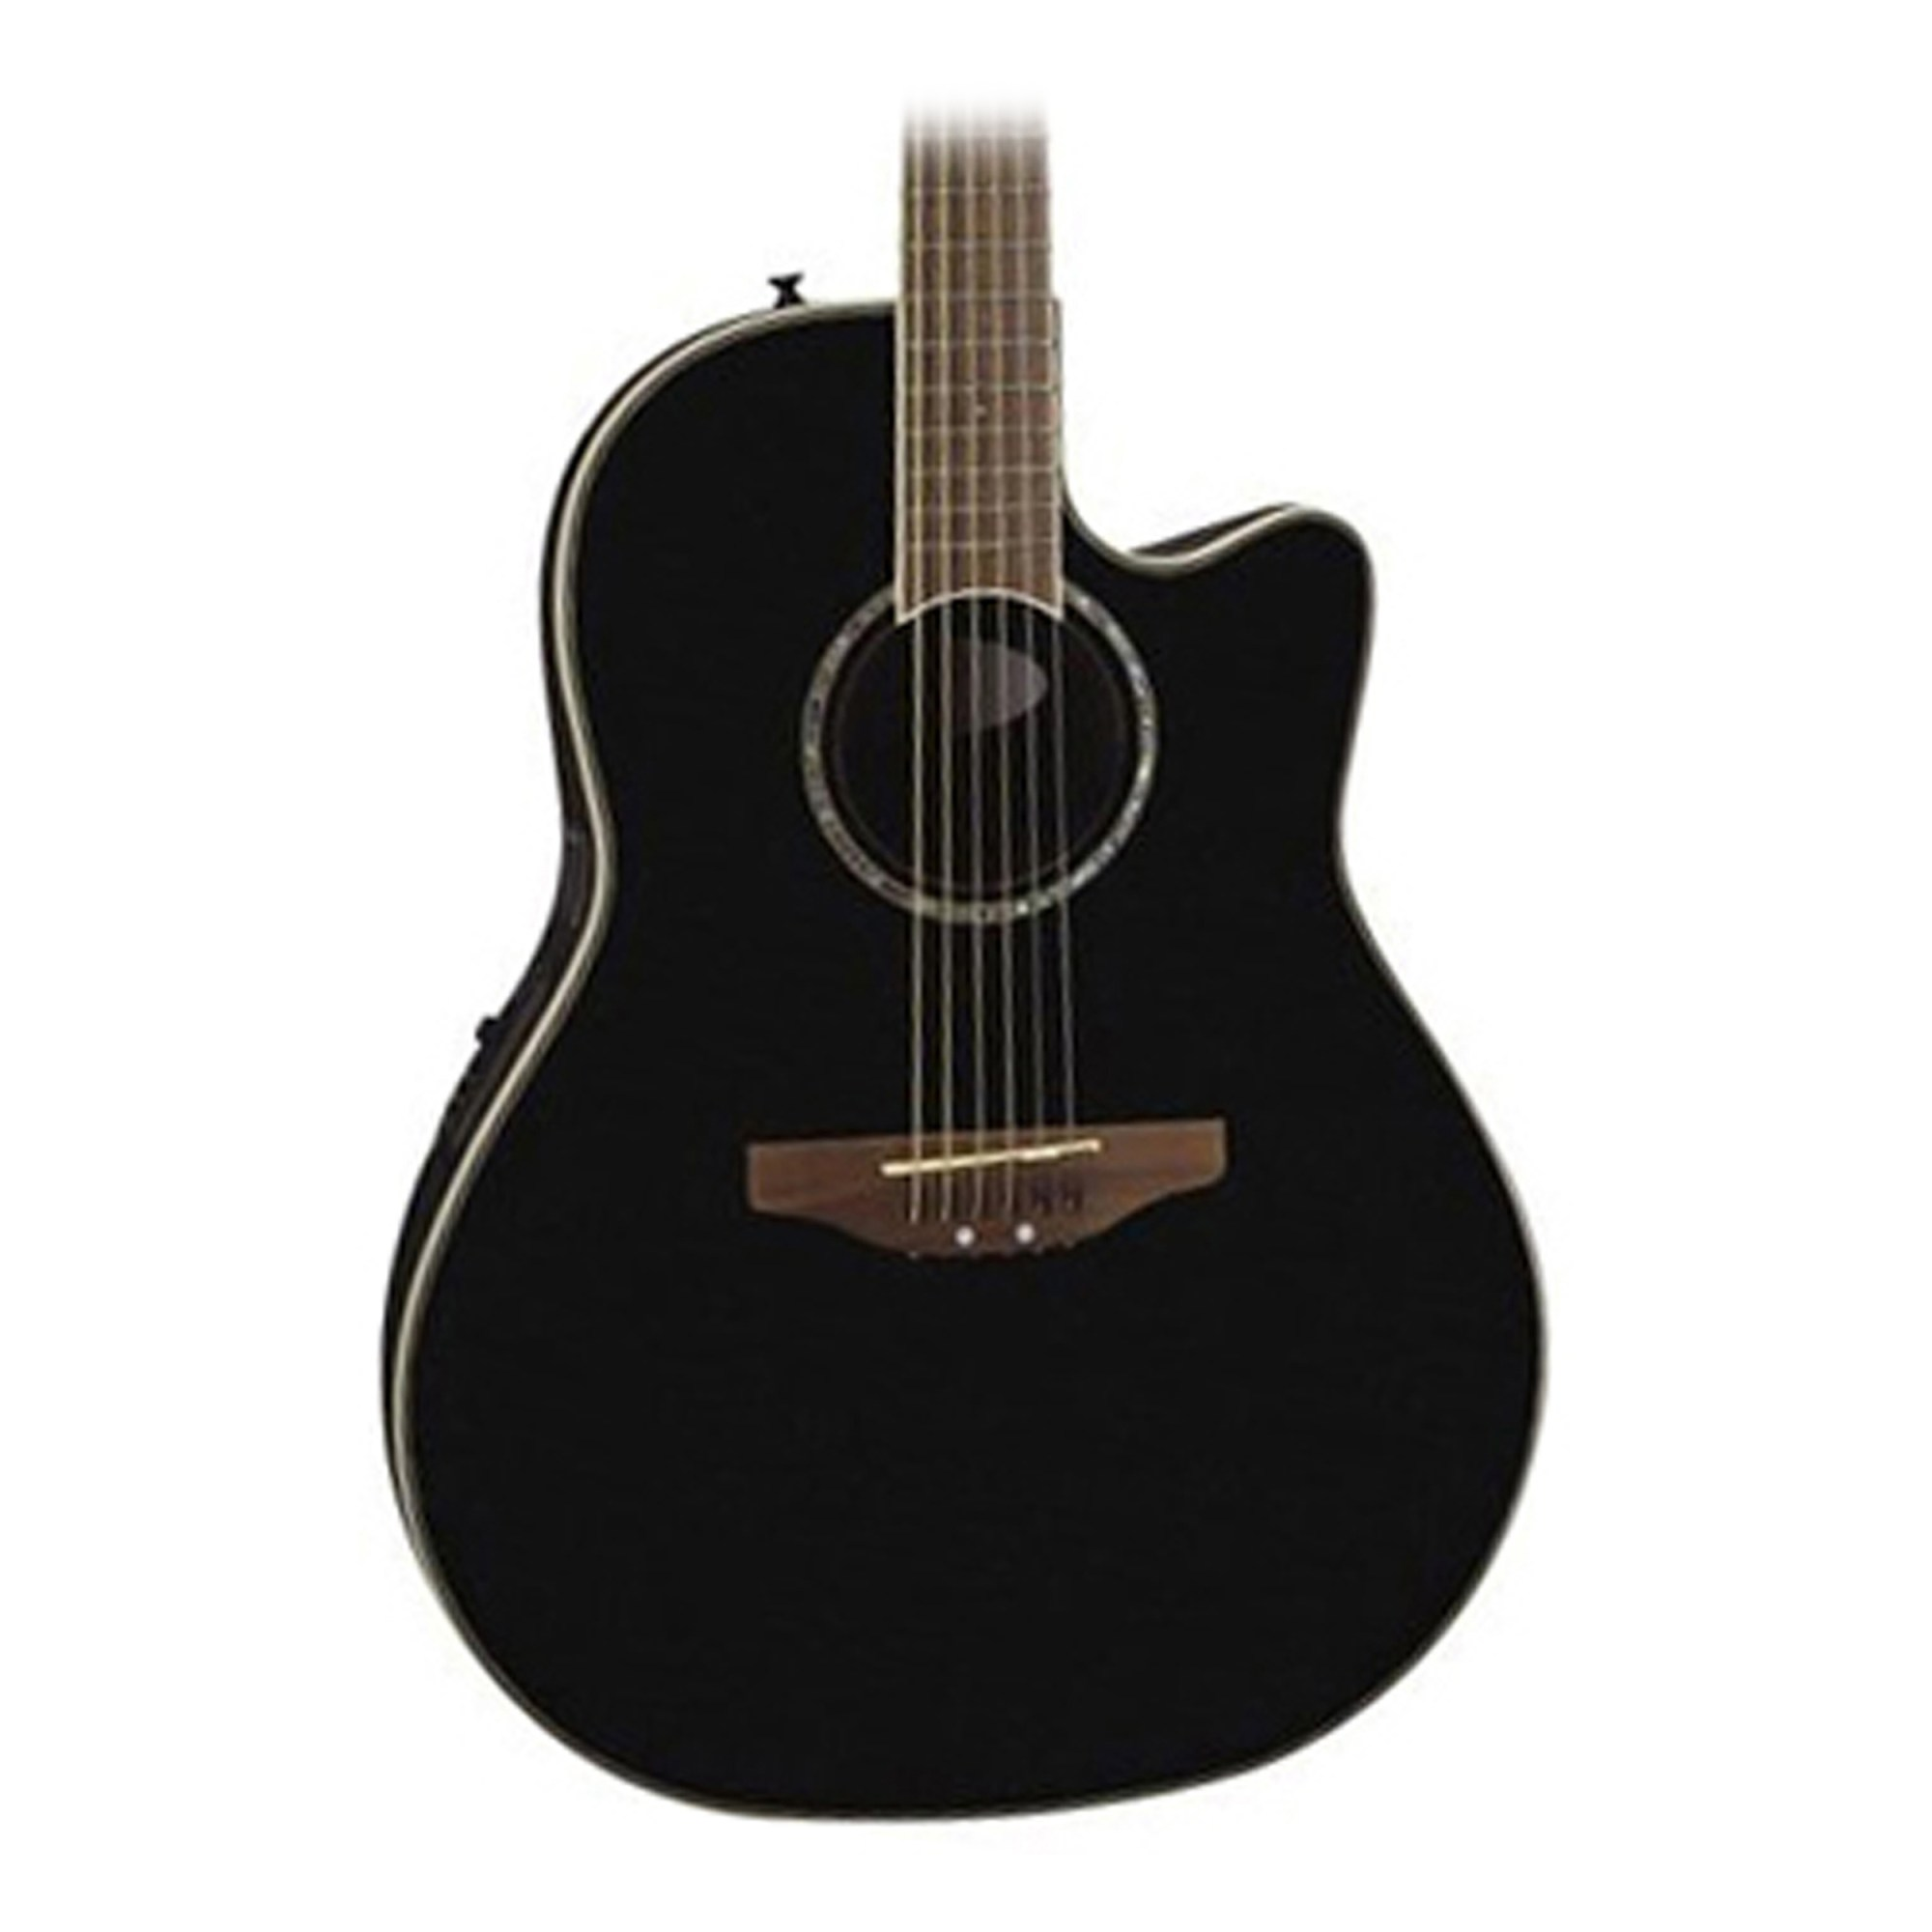 hight resolution of ovation celebrity cc24 mid depth acoustic elec guitar in black